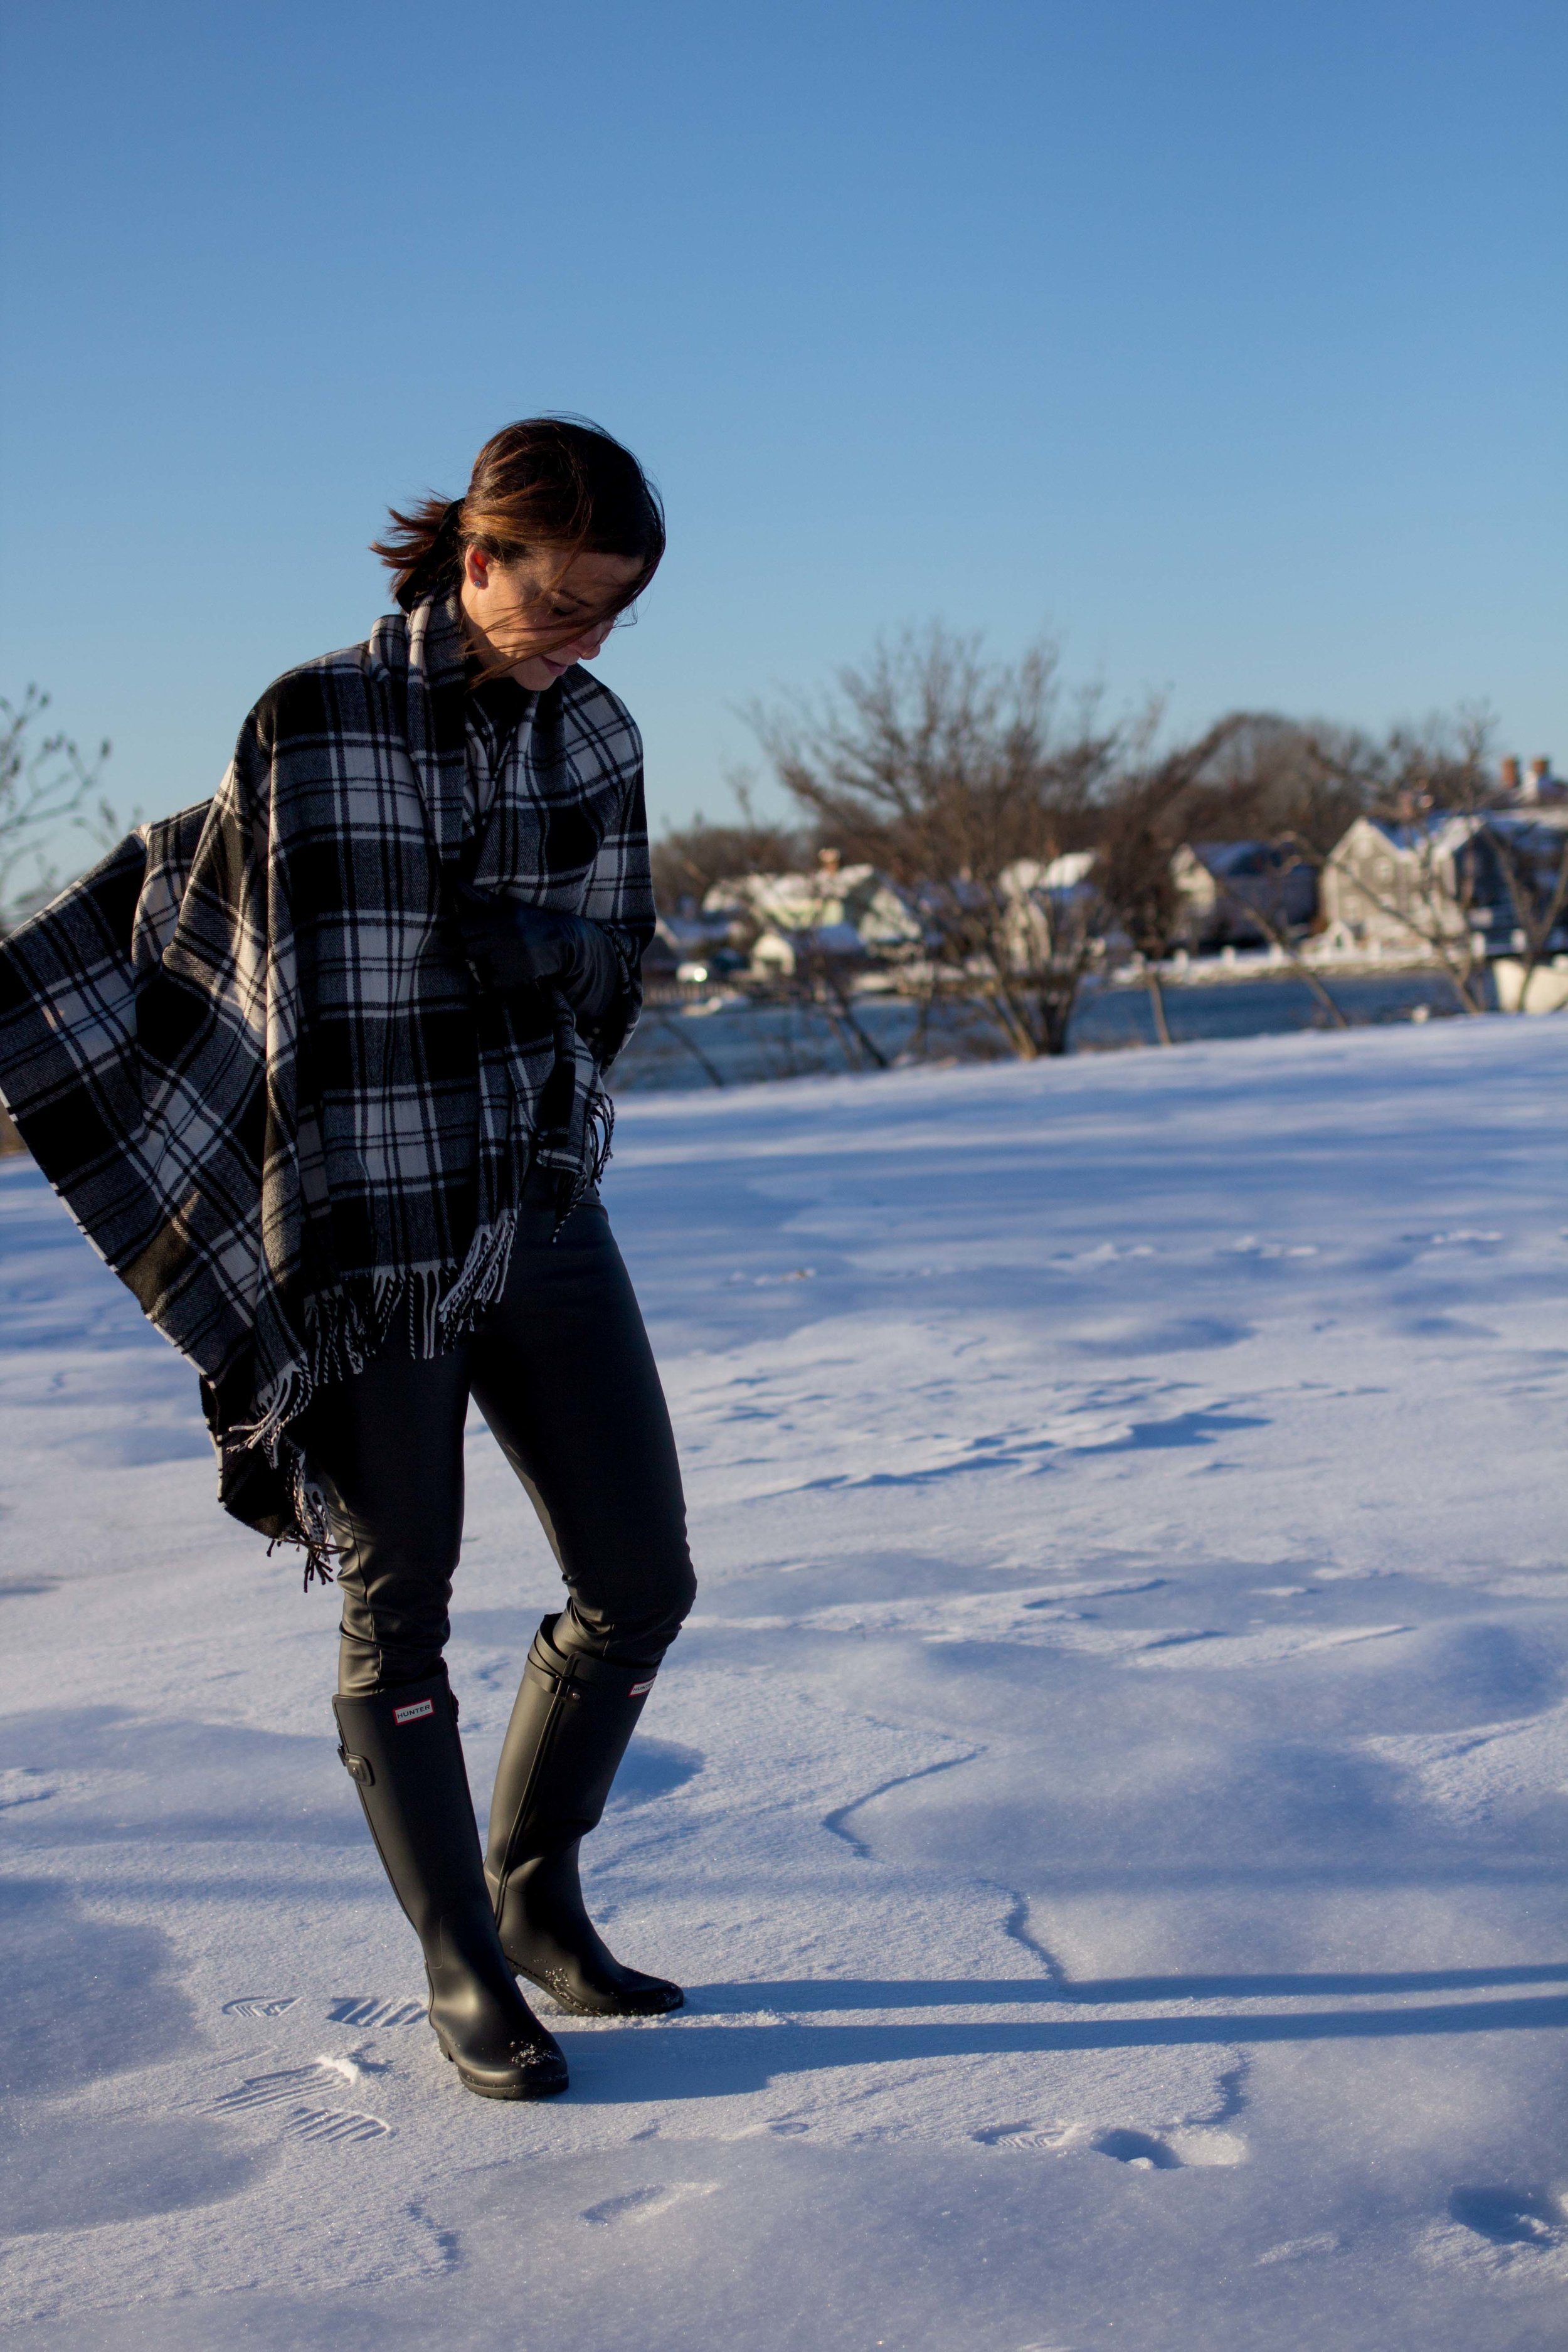 Casual Friday Outfits - Casual Outfits - Casual Weekend Outfits - Hunter Boots Outfit - Leather Legging Outfits - Blanket Scarf Outfits - Fashion for Women -  heartandseam.com  #heartandseam